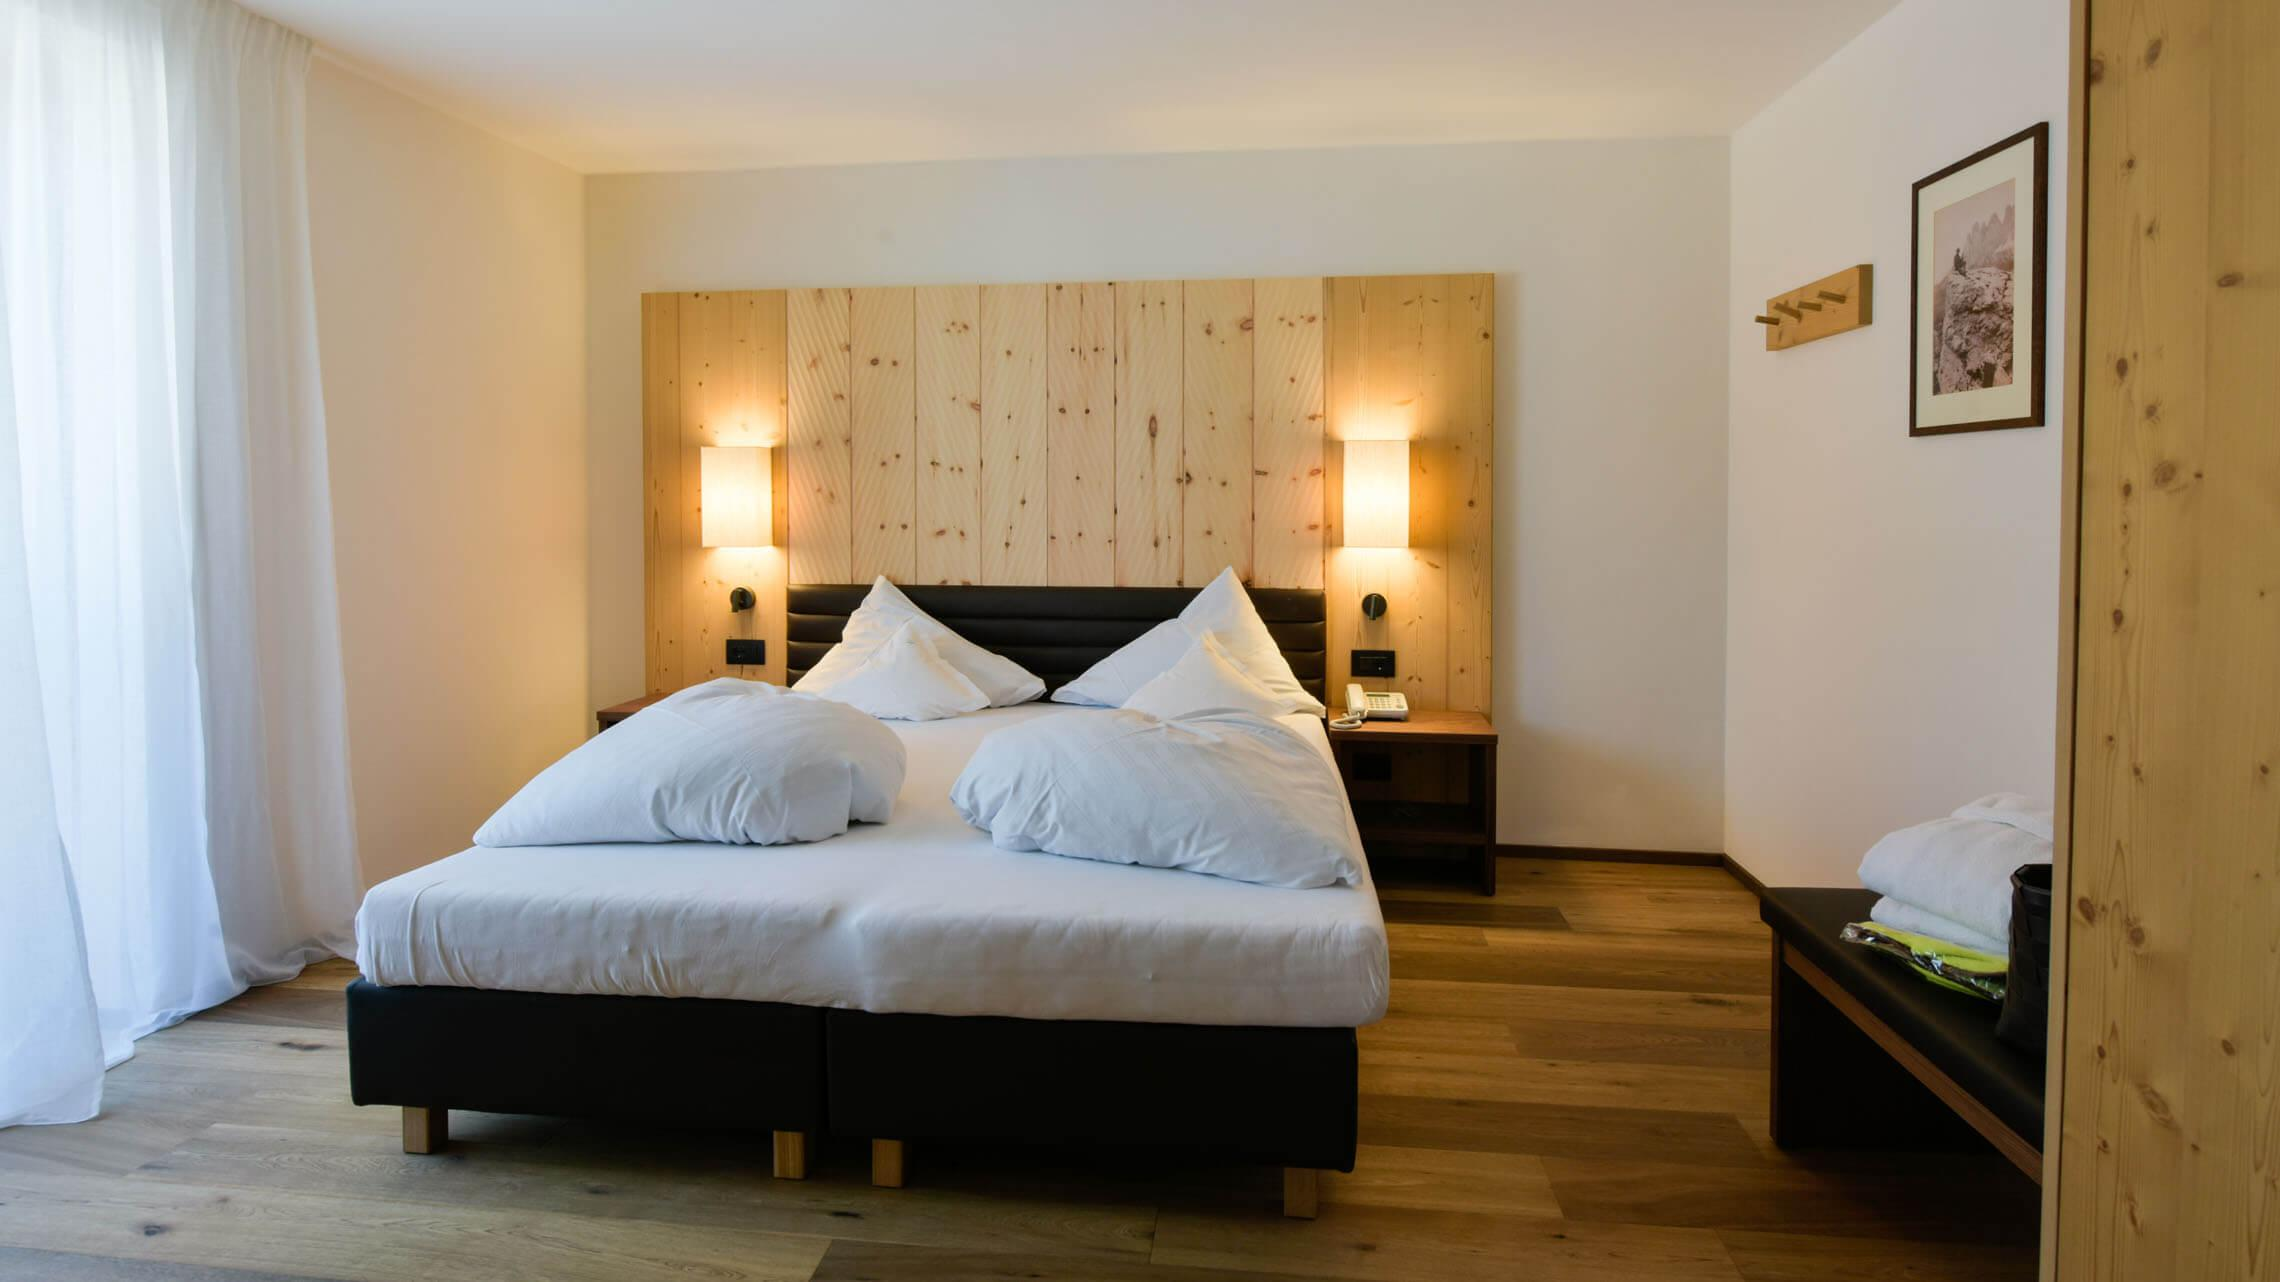 Shinrin yoku and healthy sleep at Wanderhotel Europa